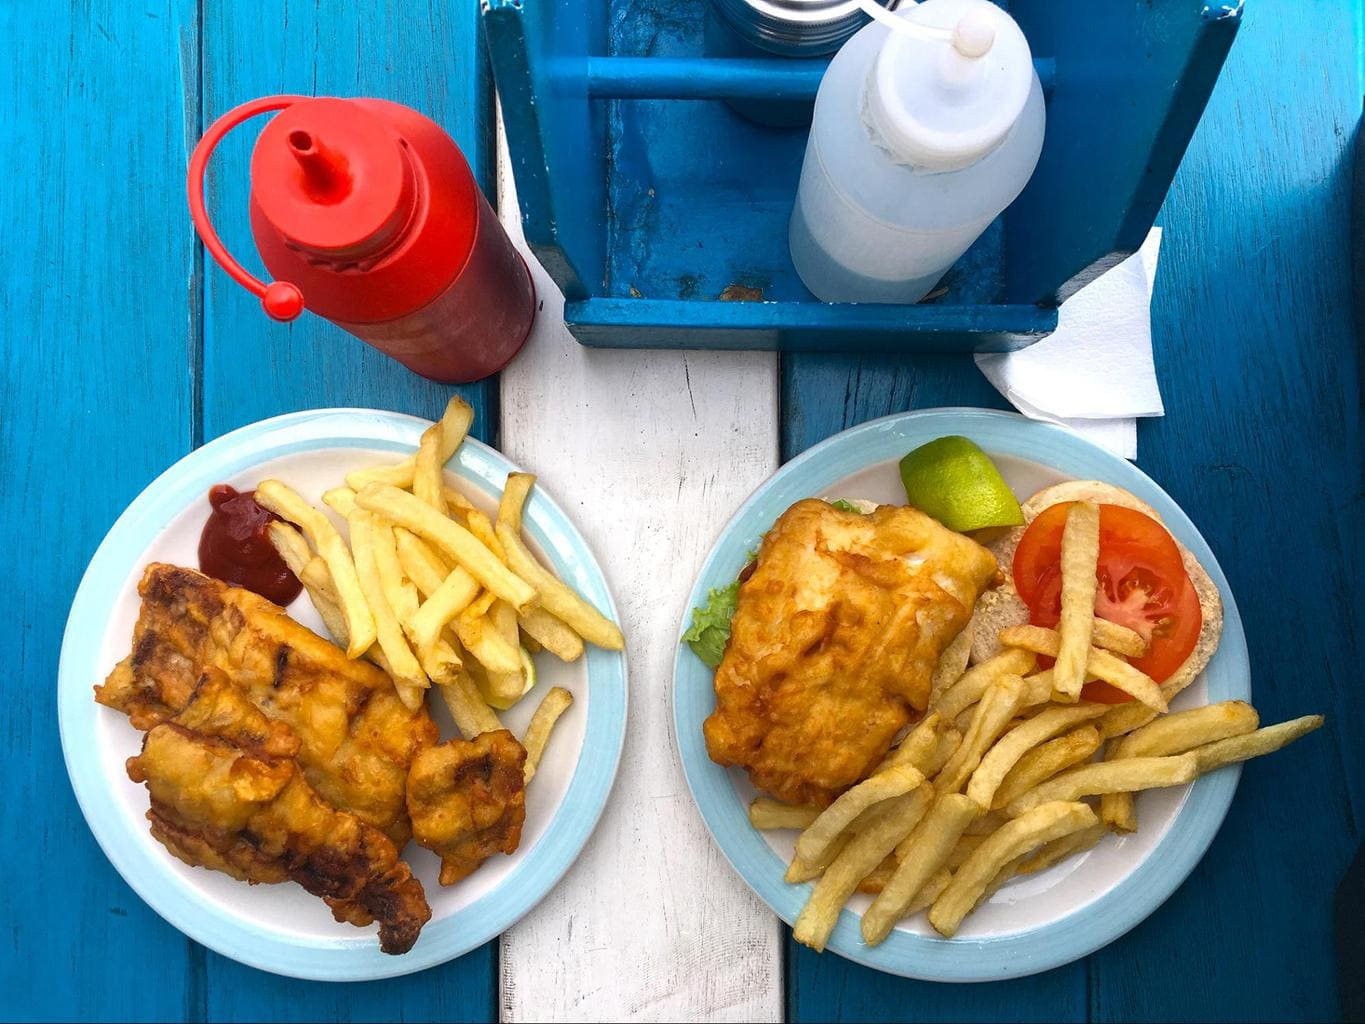 Fish and chips, South African style